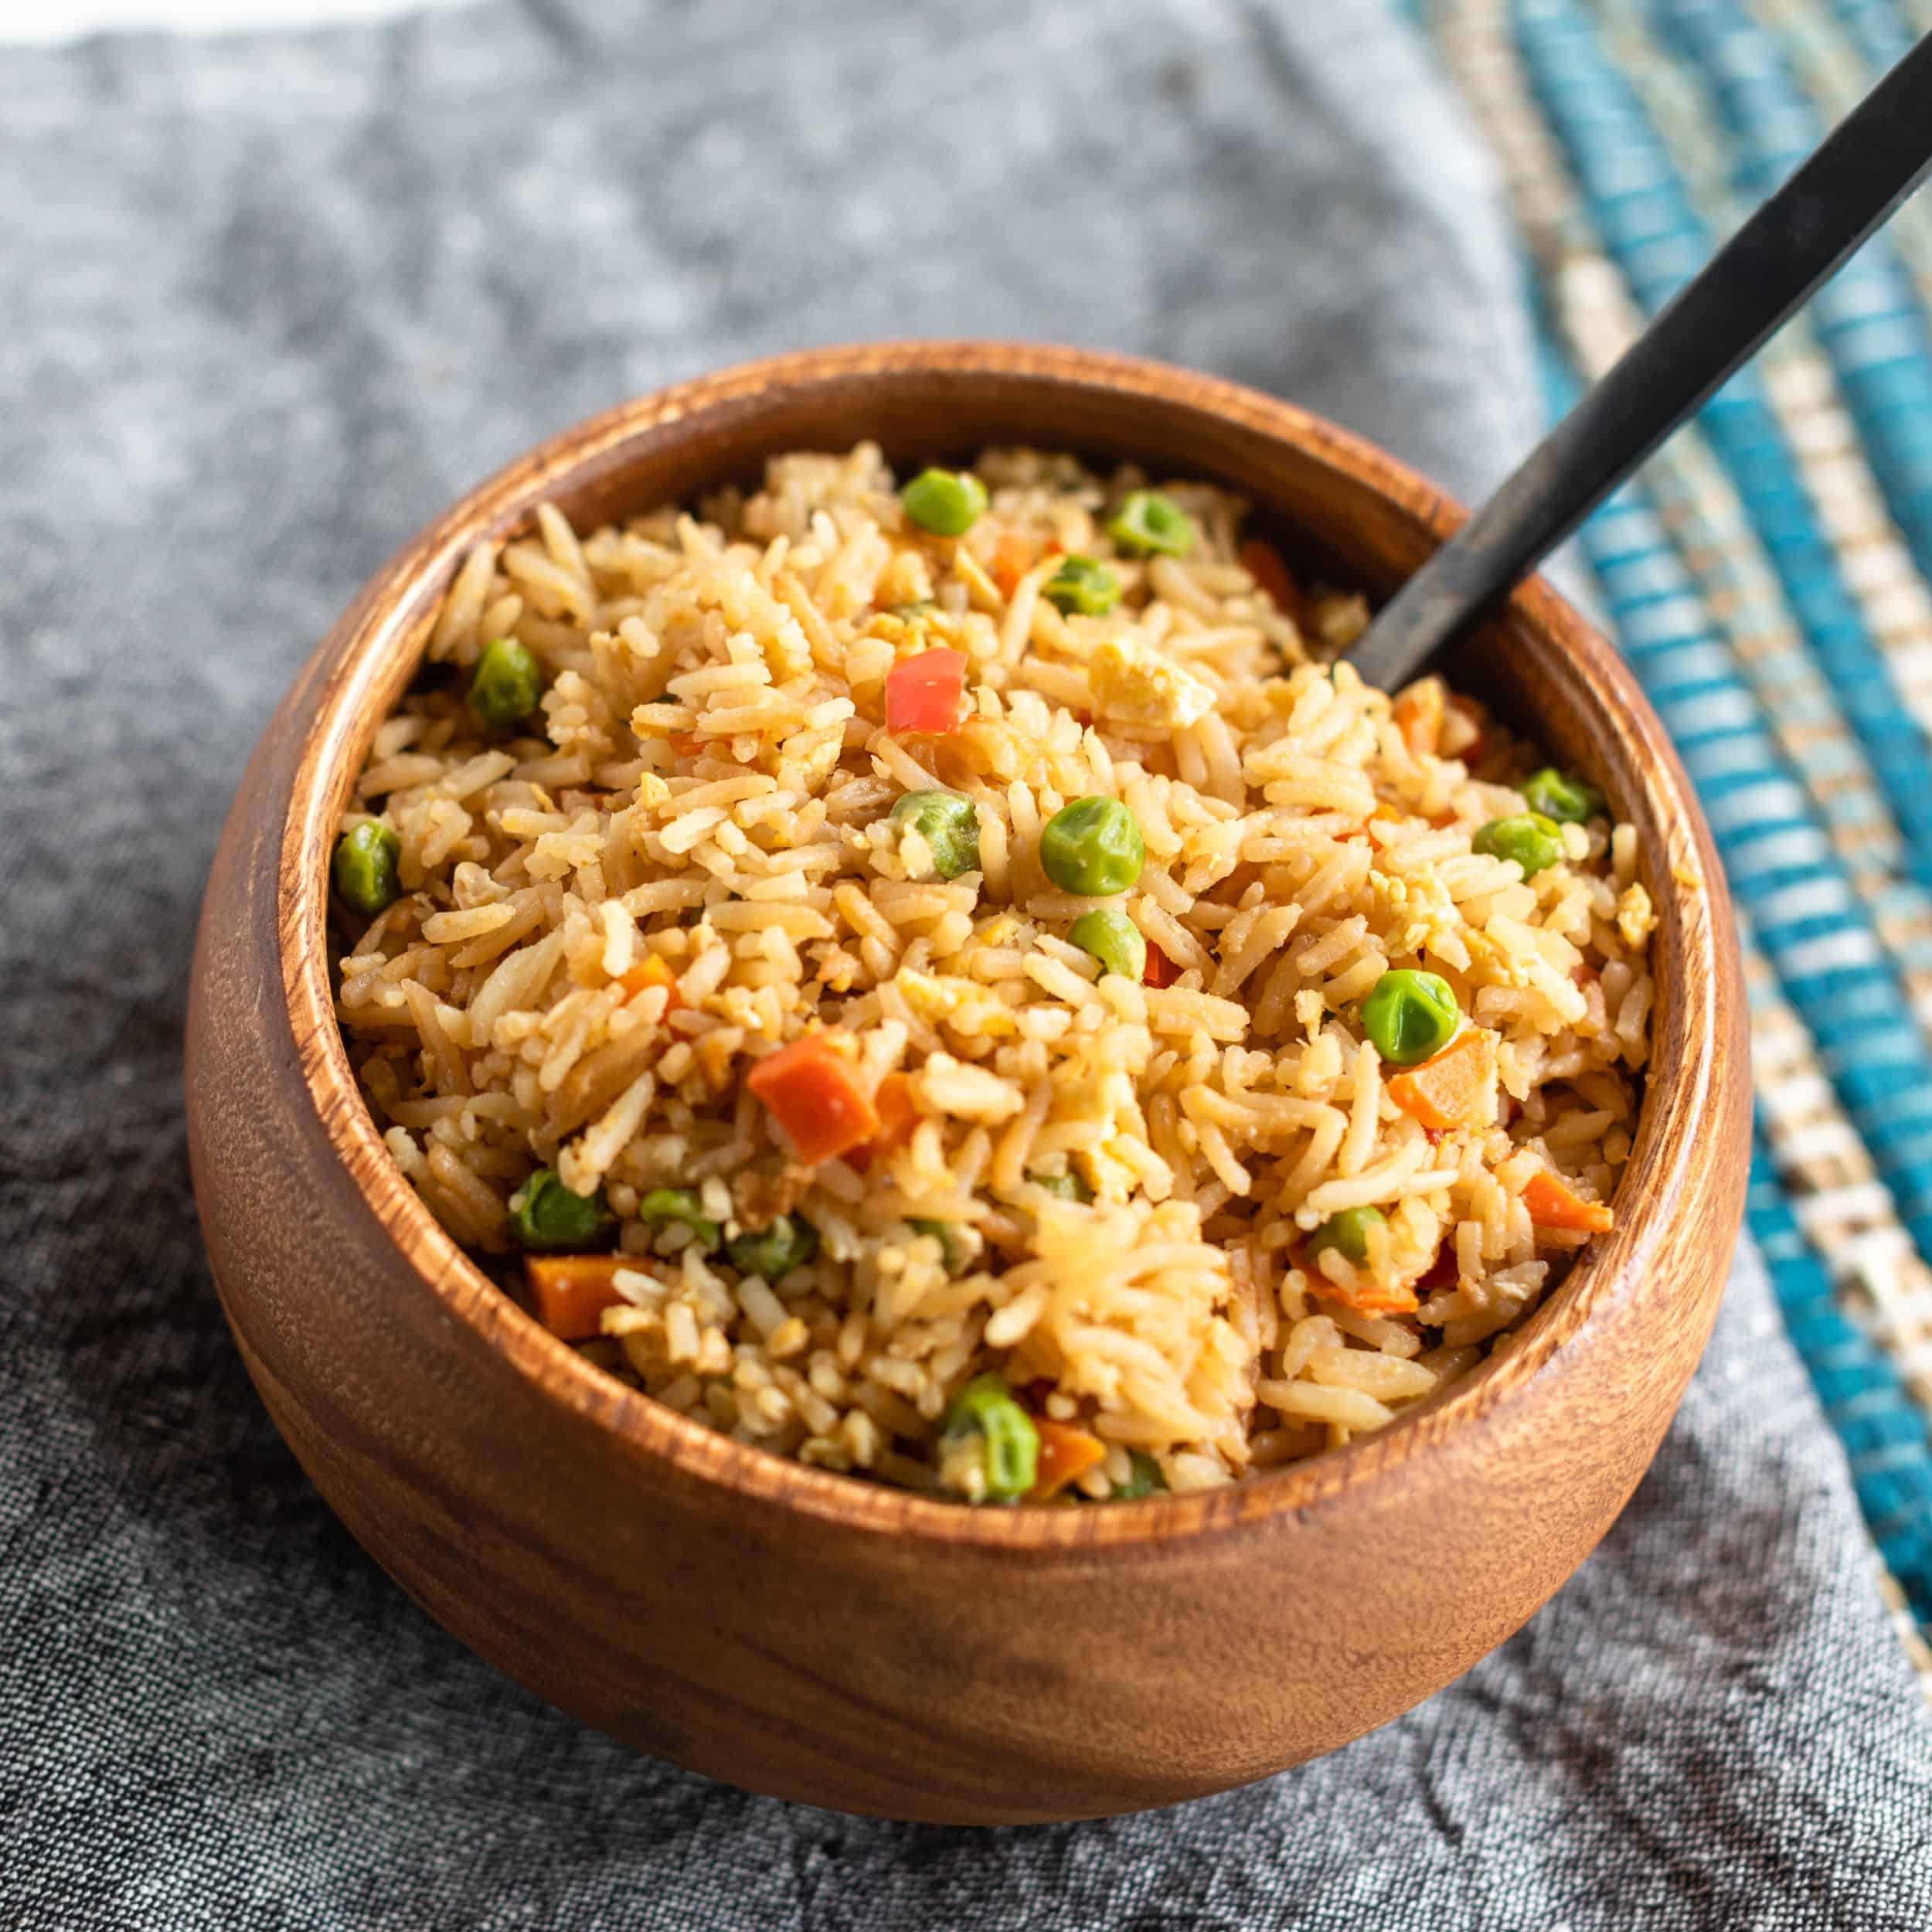 Up close picture of finished fried rice ready to serve in a wooden bowl on denim napkin and serving spoon